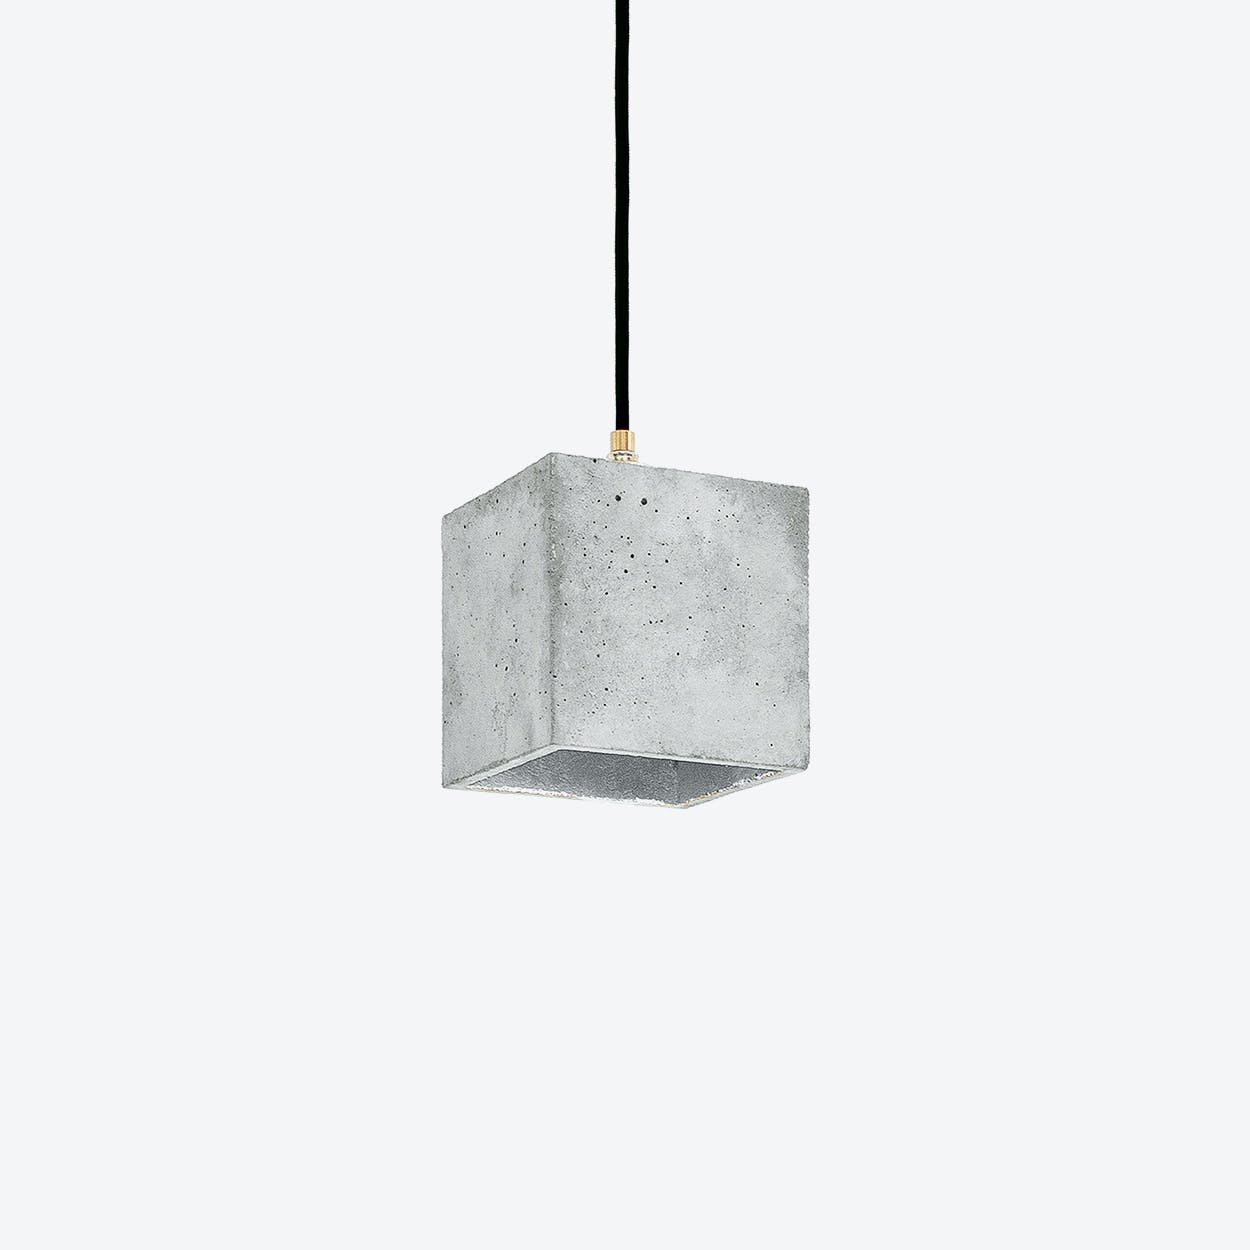 Concrete Pendant Light Cubic B1 in Light Grey and Silver